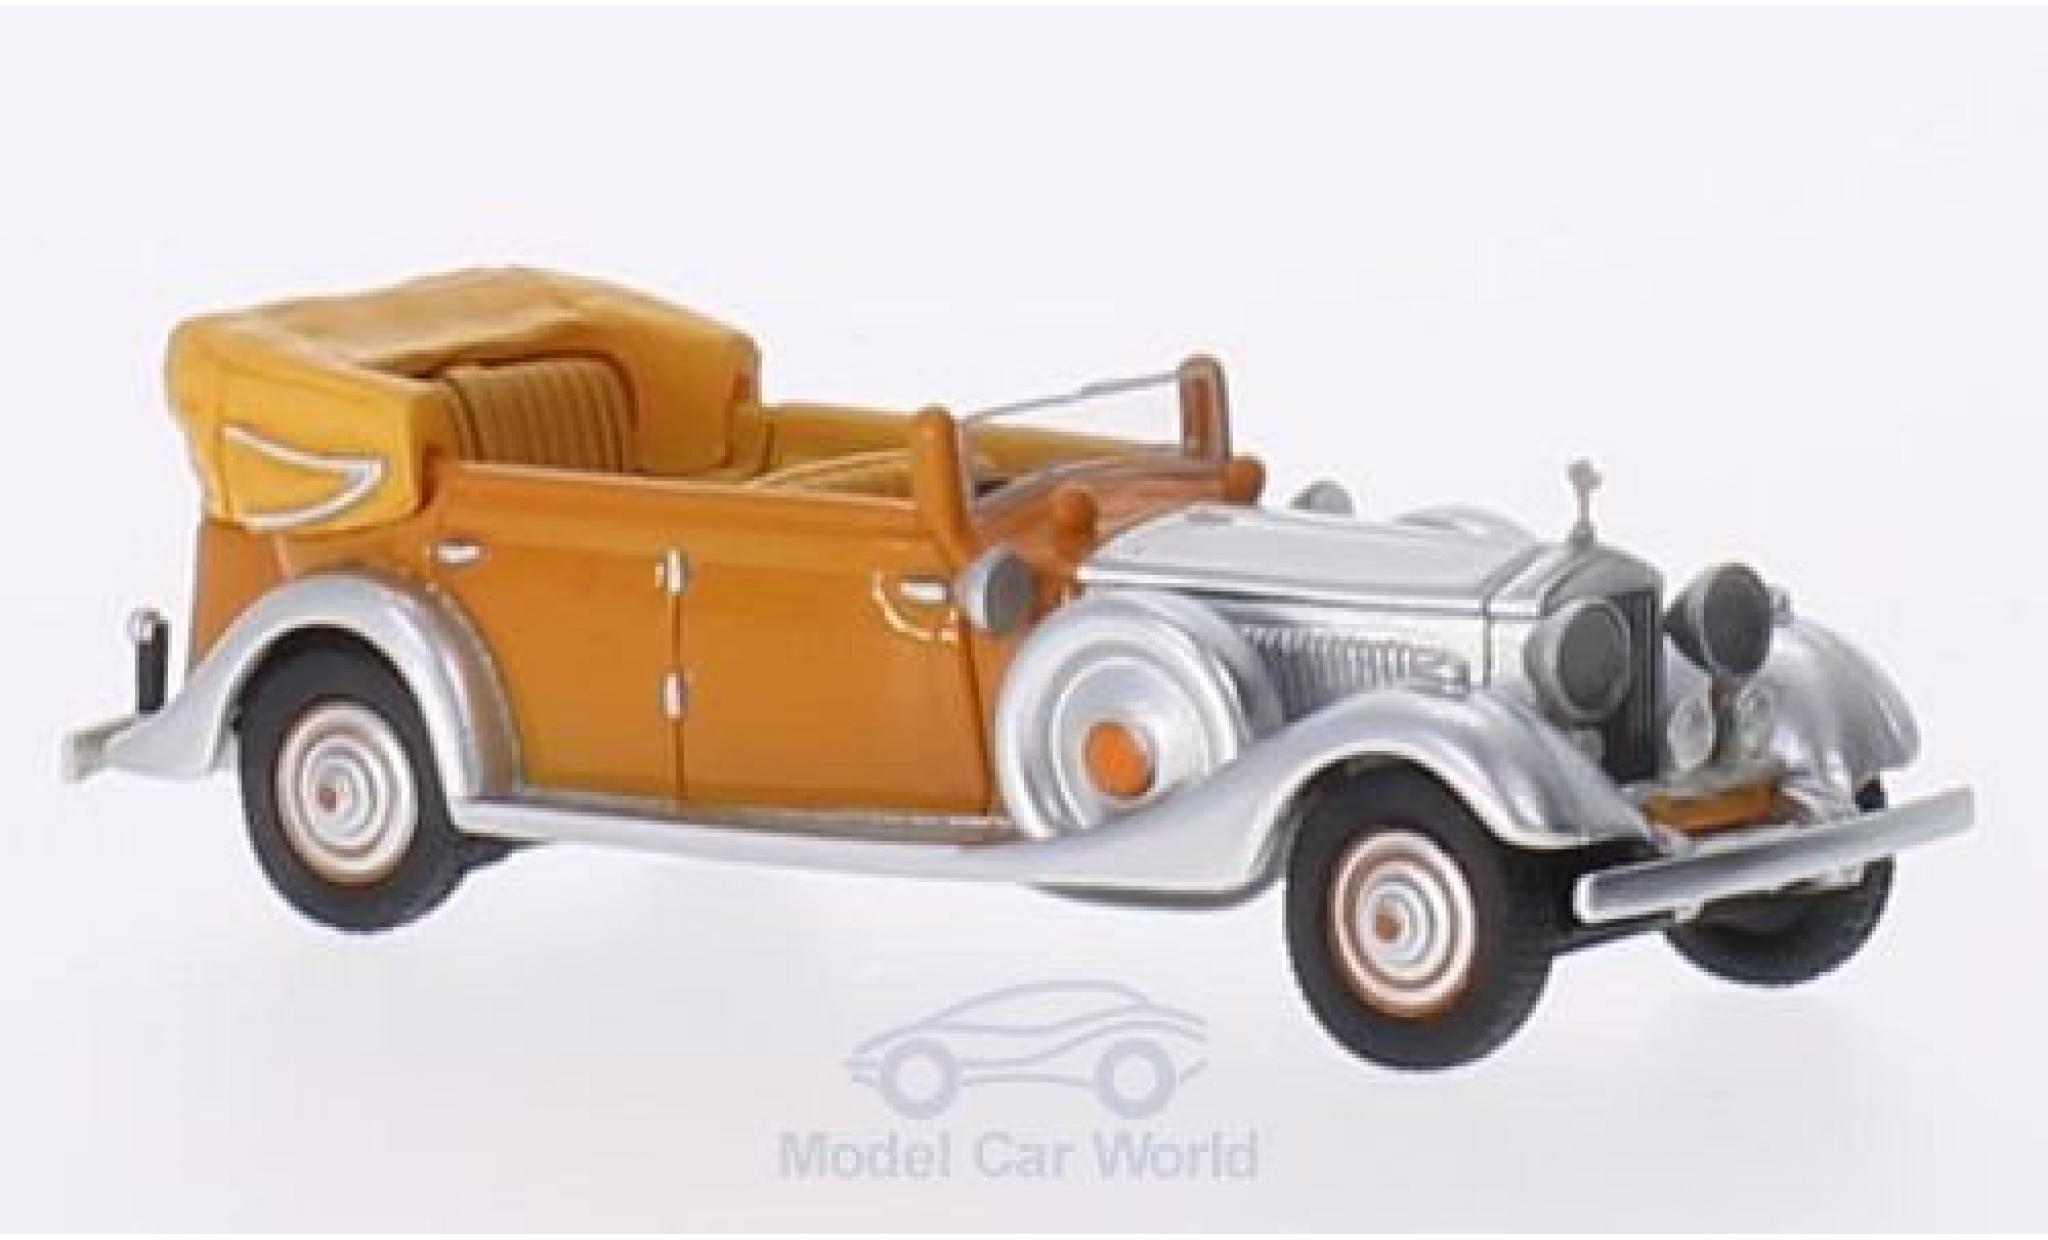 Rolls Royce Phantom 1934 1/87 BoS Models II Thrupp & Maberly orange/aluminium RHD Star of India